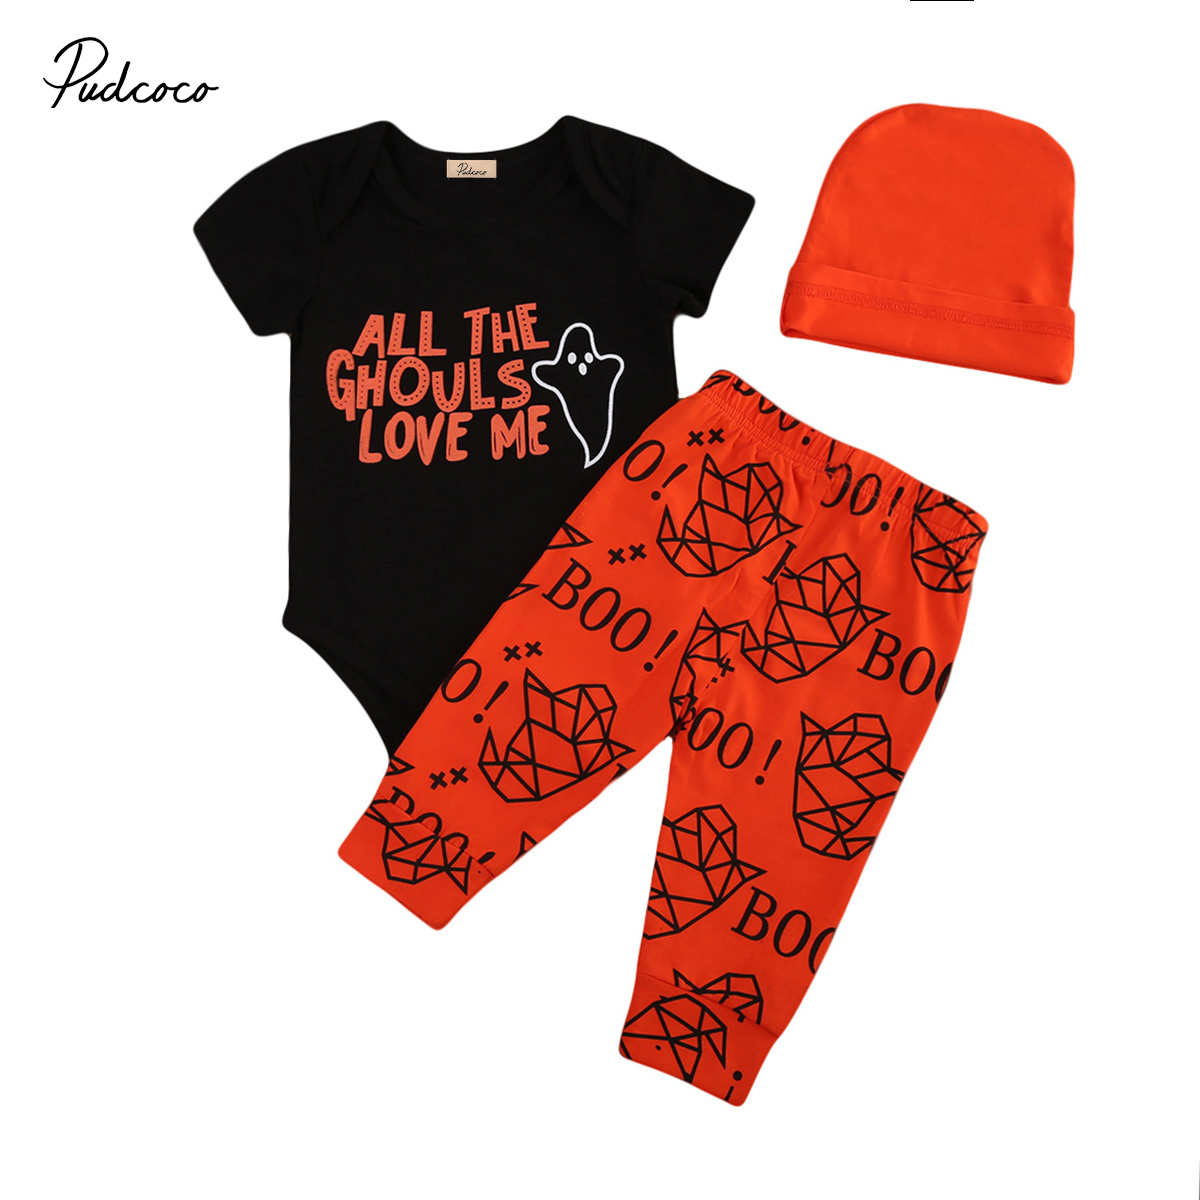 2017 Halloween Toddler Baby Boy Girl Costume Short Sleeve Romper Jumpsuit Long Pants Outfits Set Letter Print Pattern Clothes